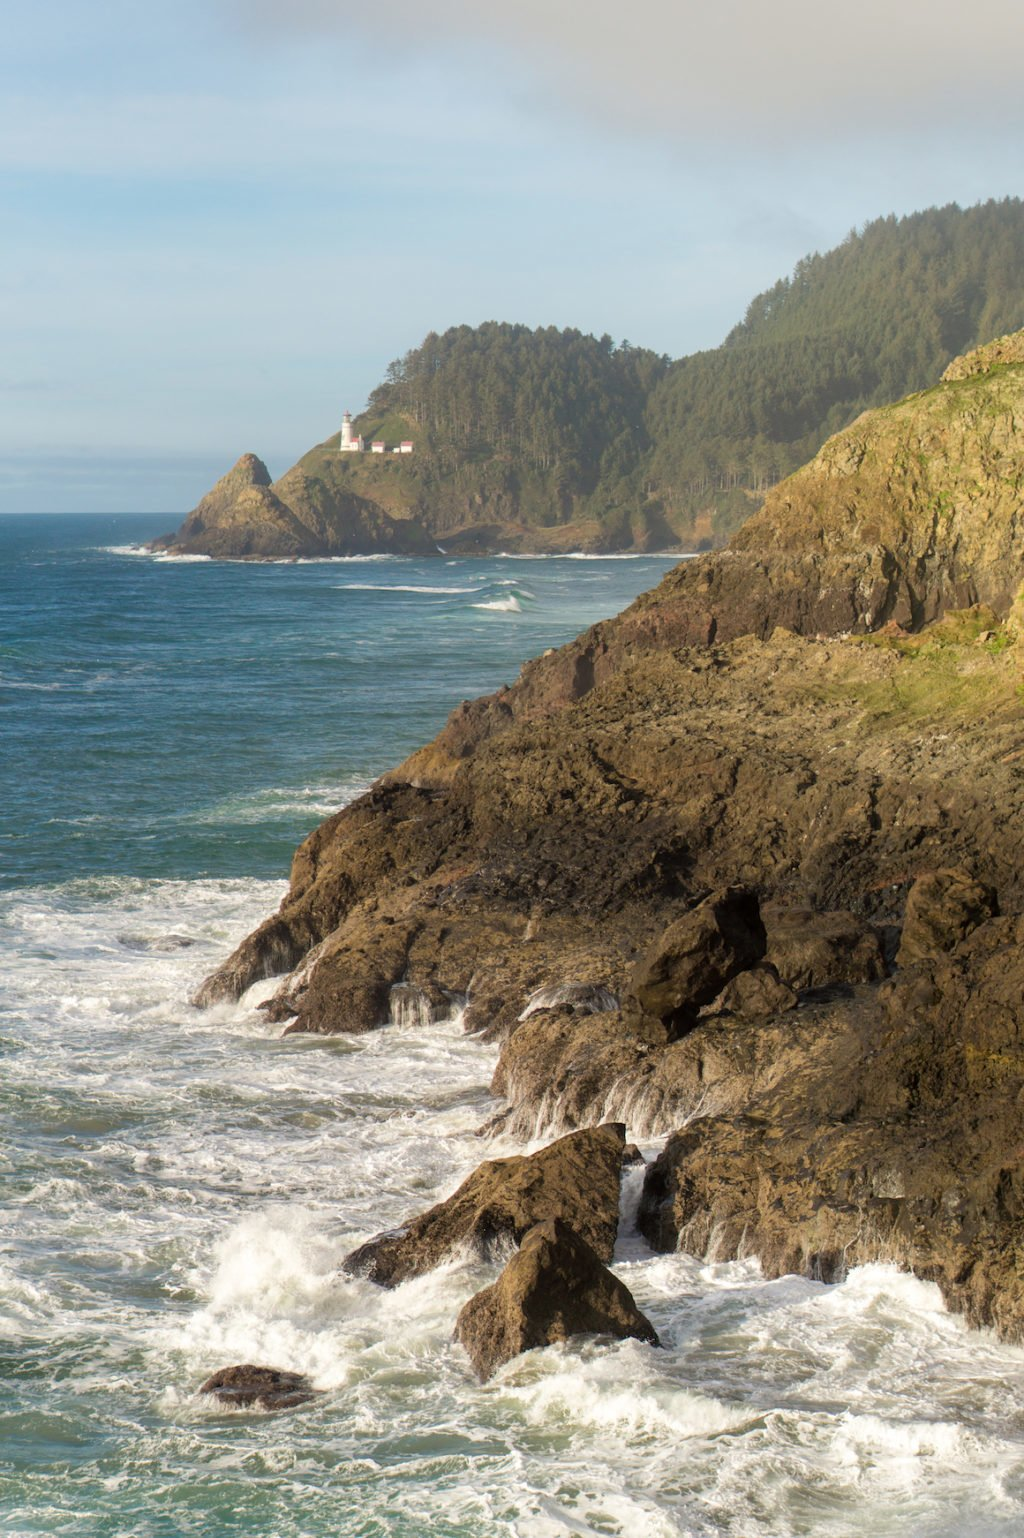 Lighthouse •25 Photos to Spark Your Visit to the Oregon Coast | The Wanderful Me